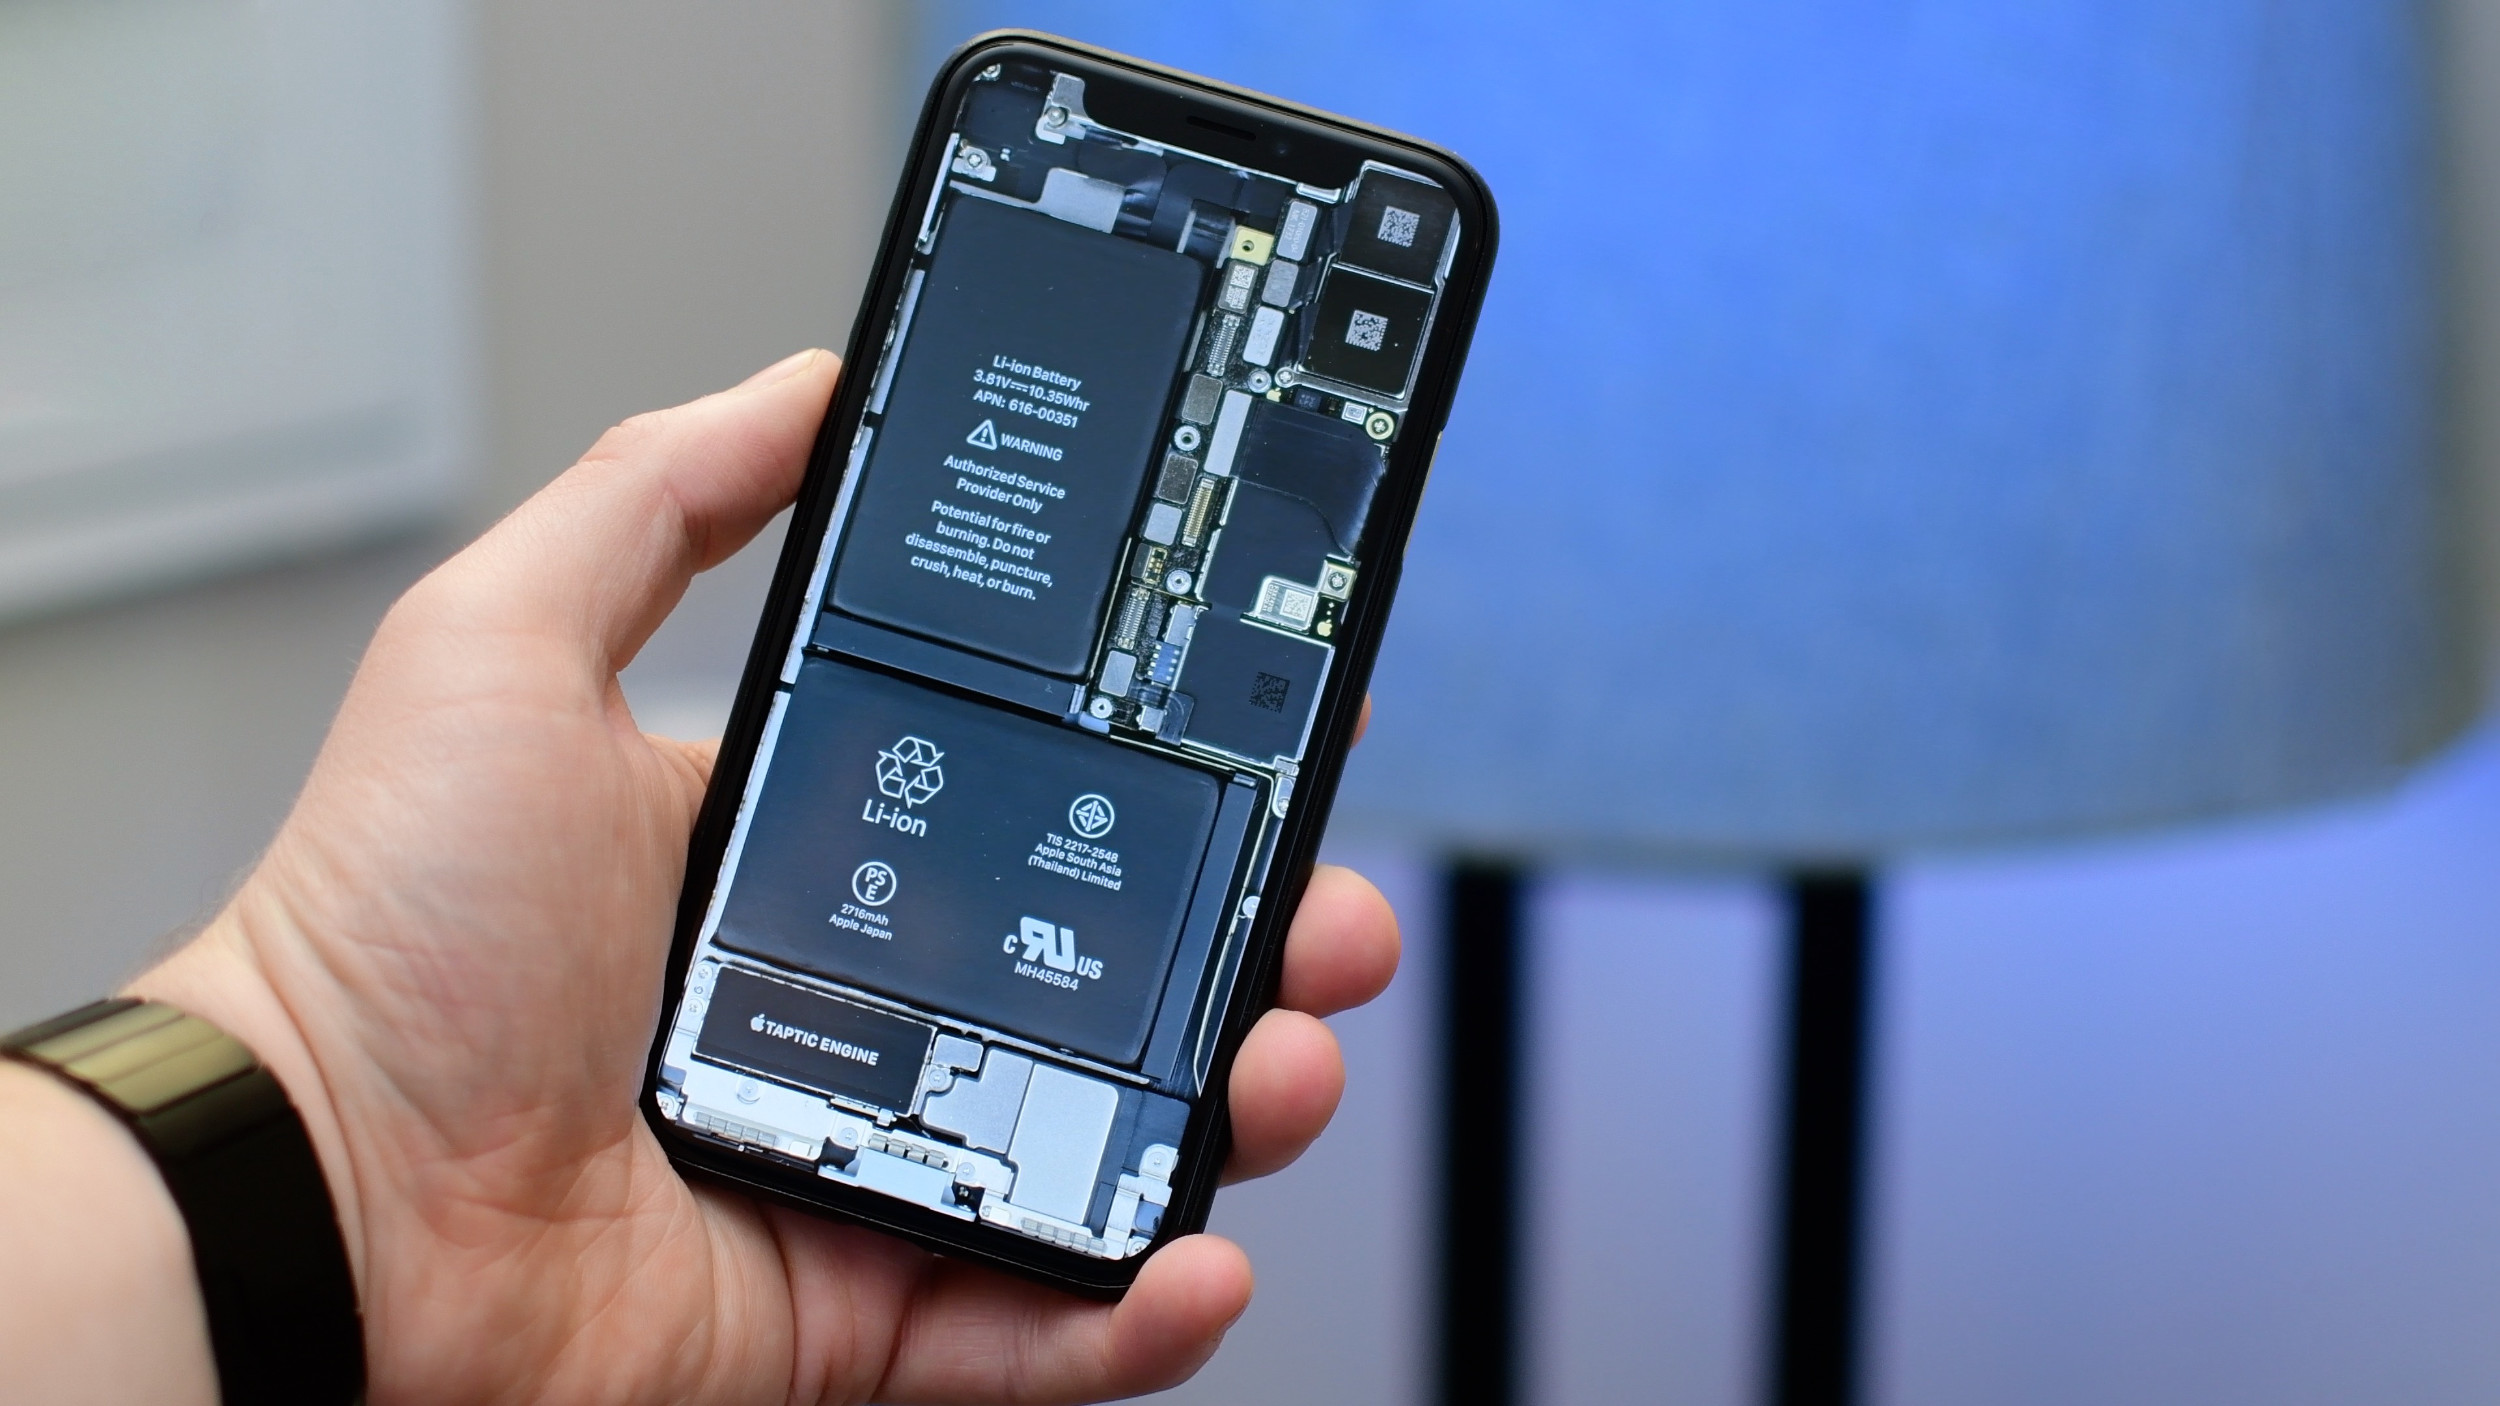 Iphone Wallpaper: IPhone X Internals Wallpaper